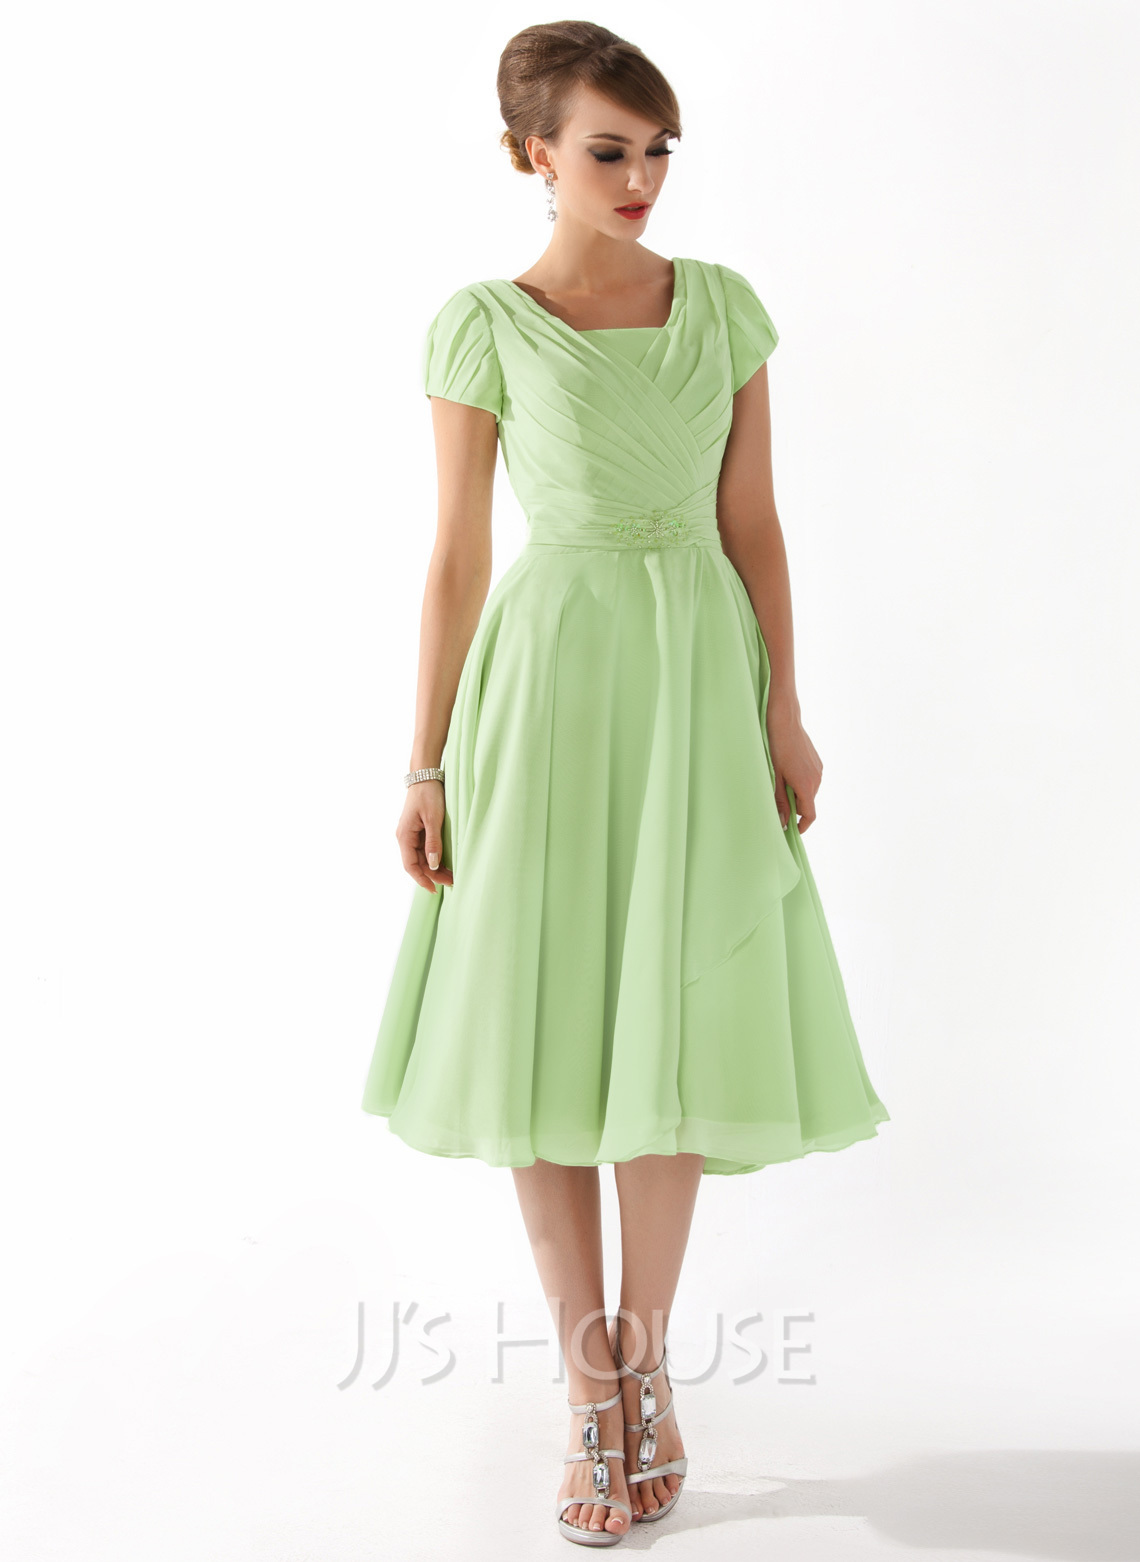 Square Neckline Knee-Length Chiffon Mother of the Bride Dress